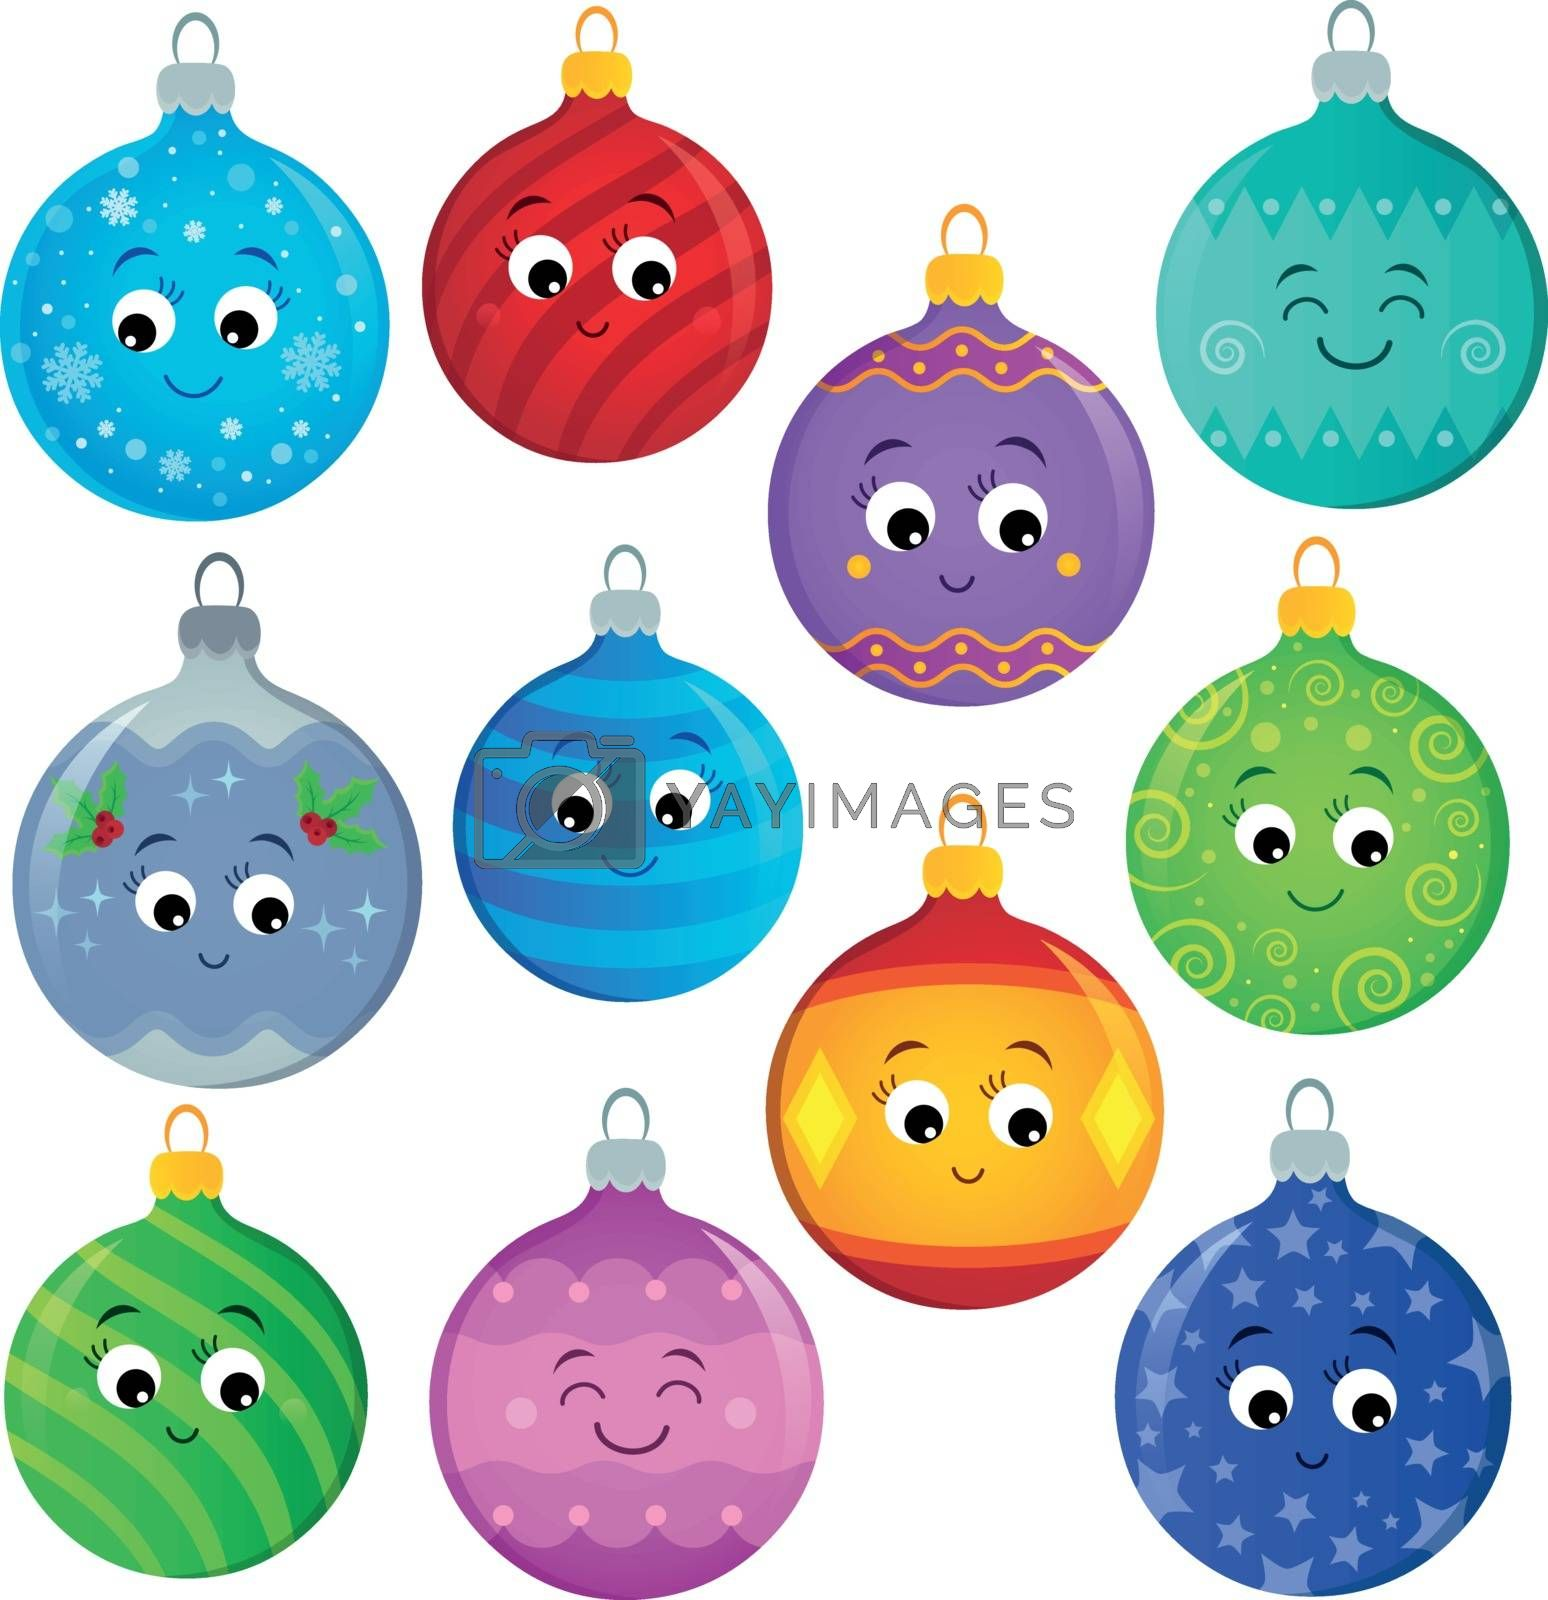 Stylized Christmas ornaments theme set 2 - eps10 vector illustration.